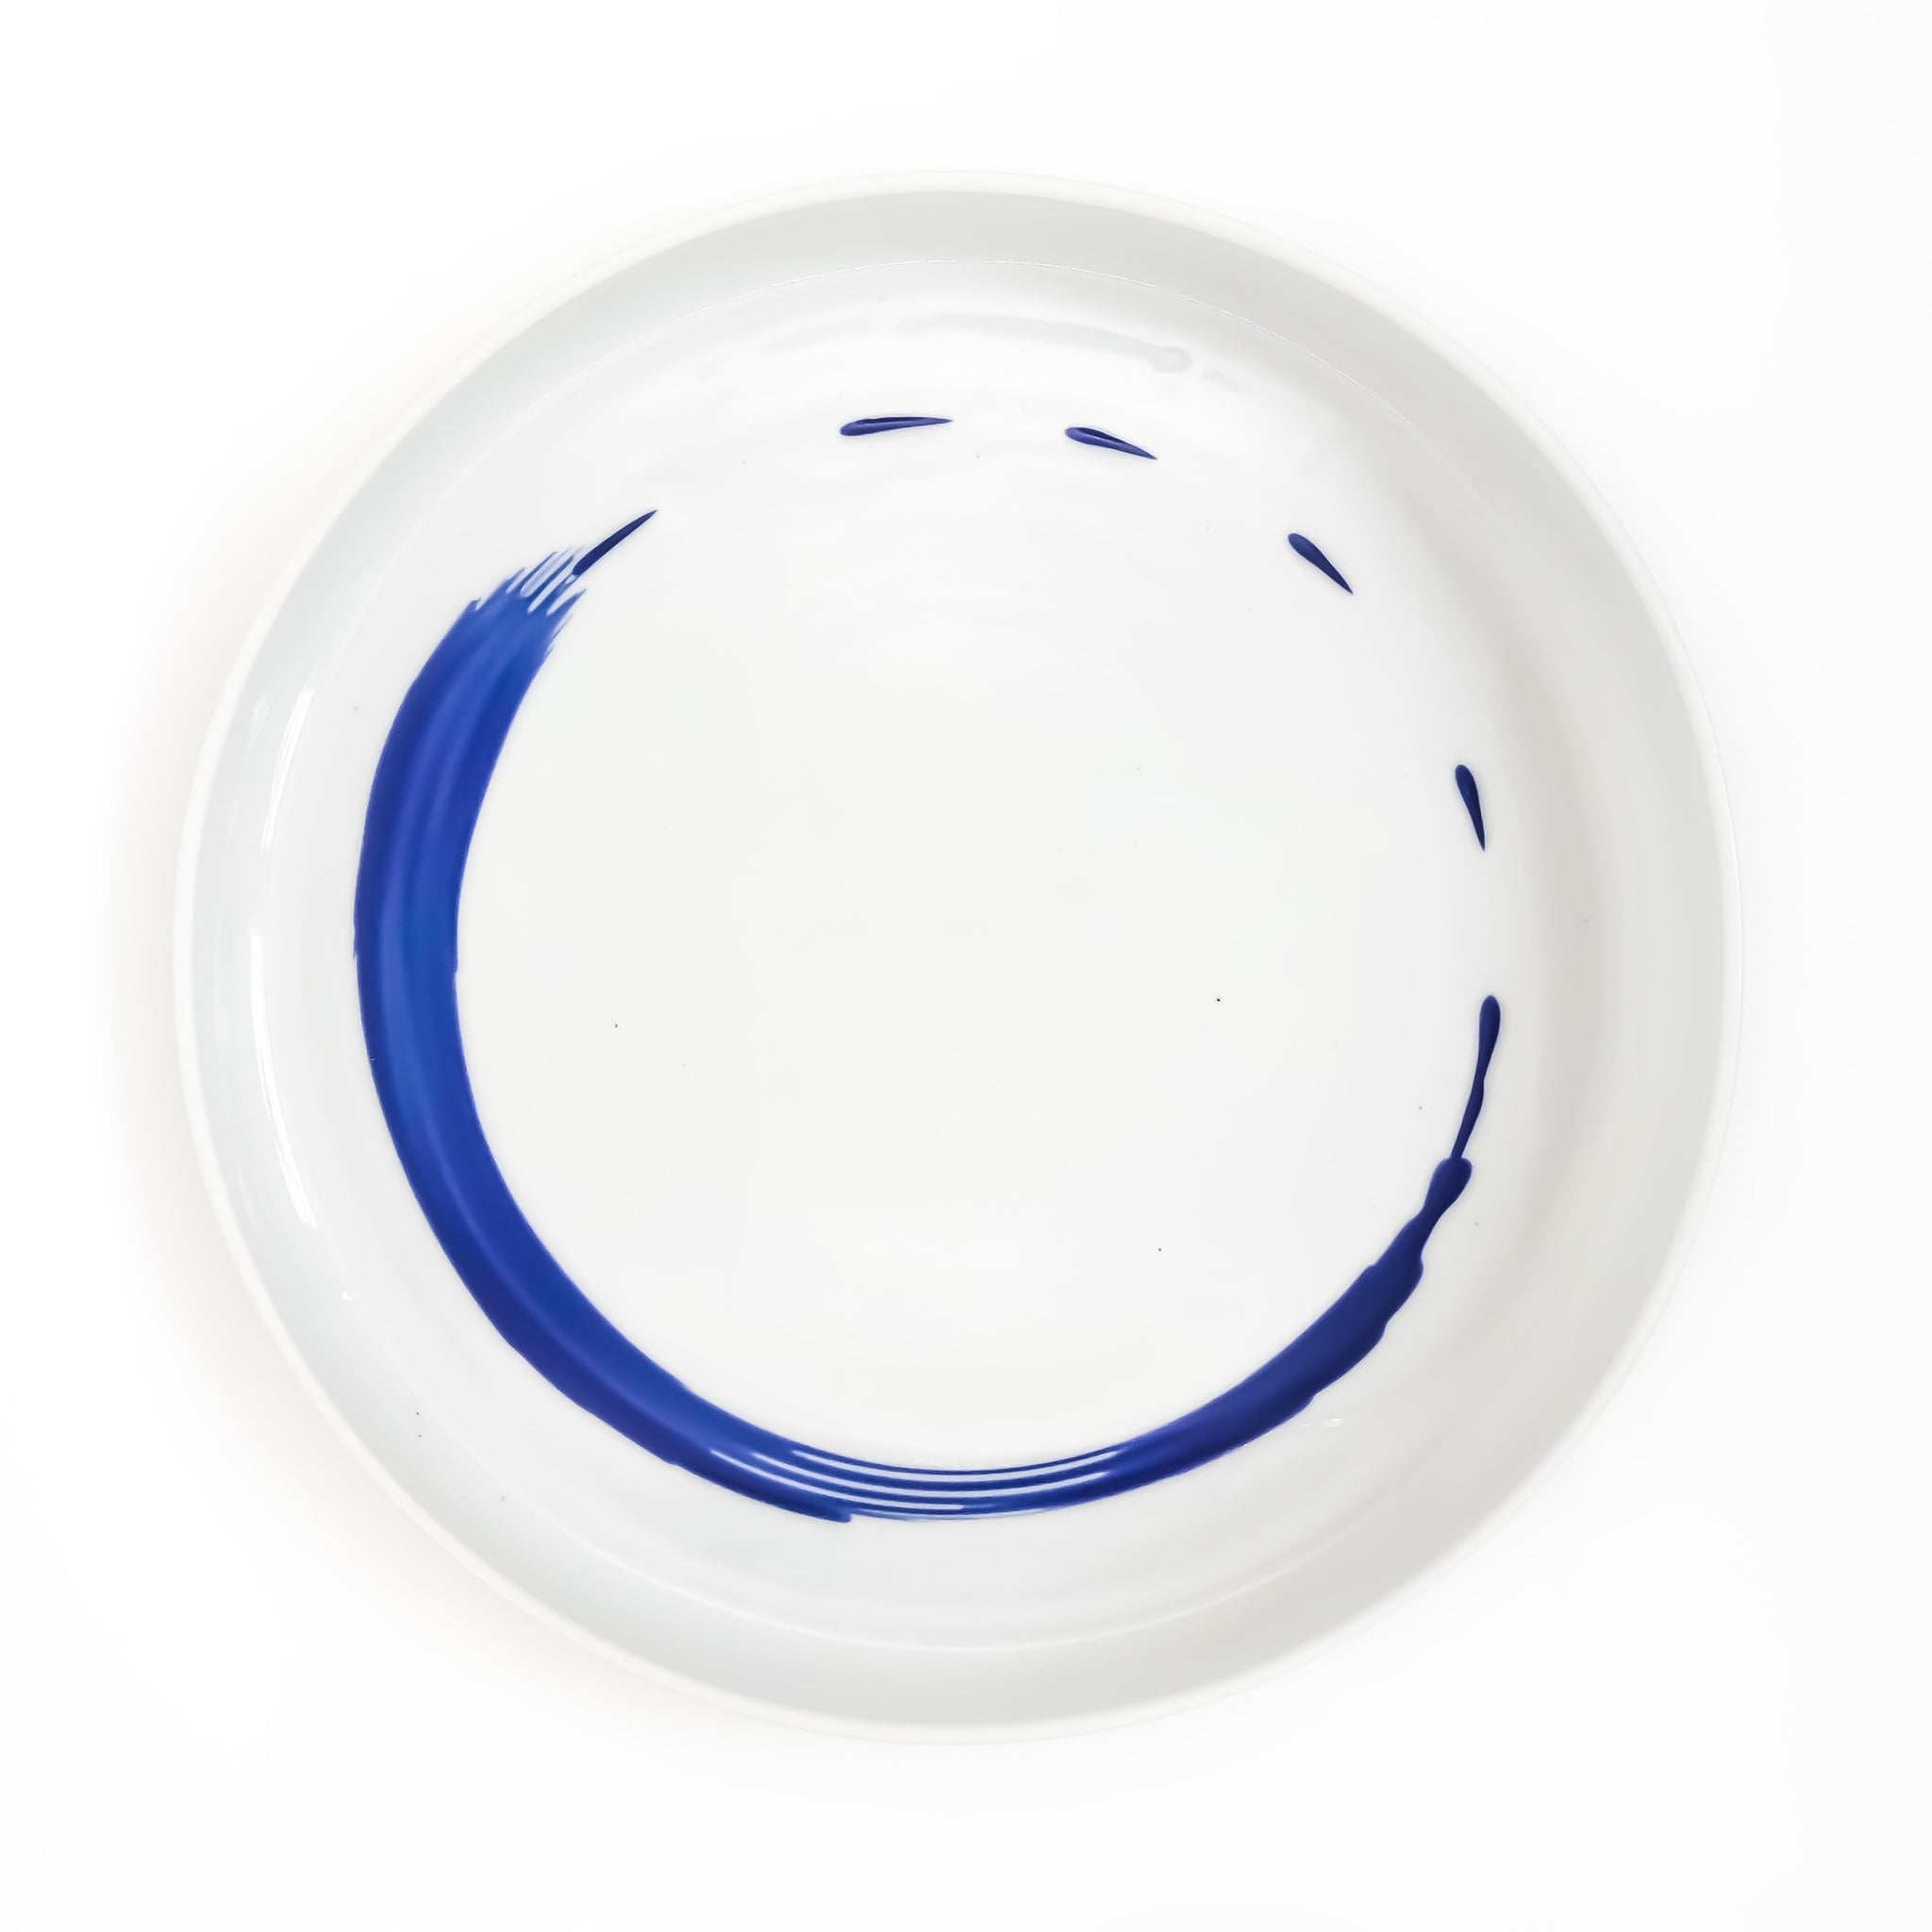 Enso plate